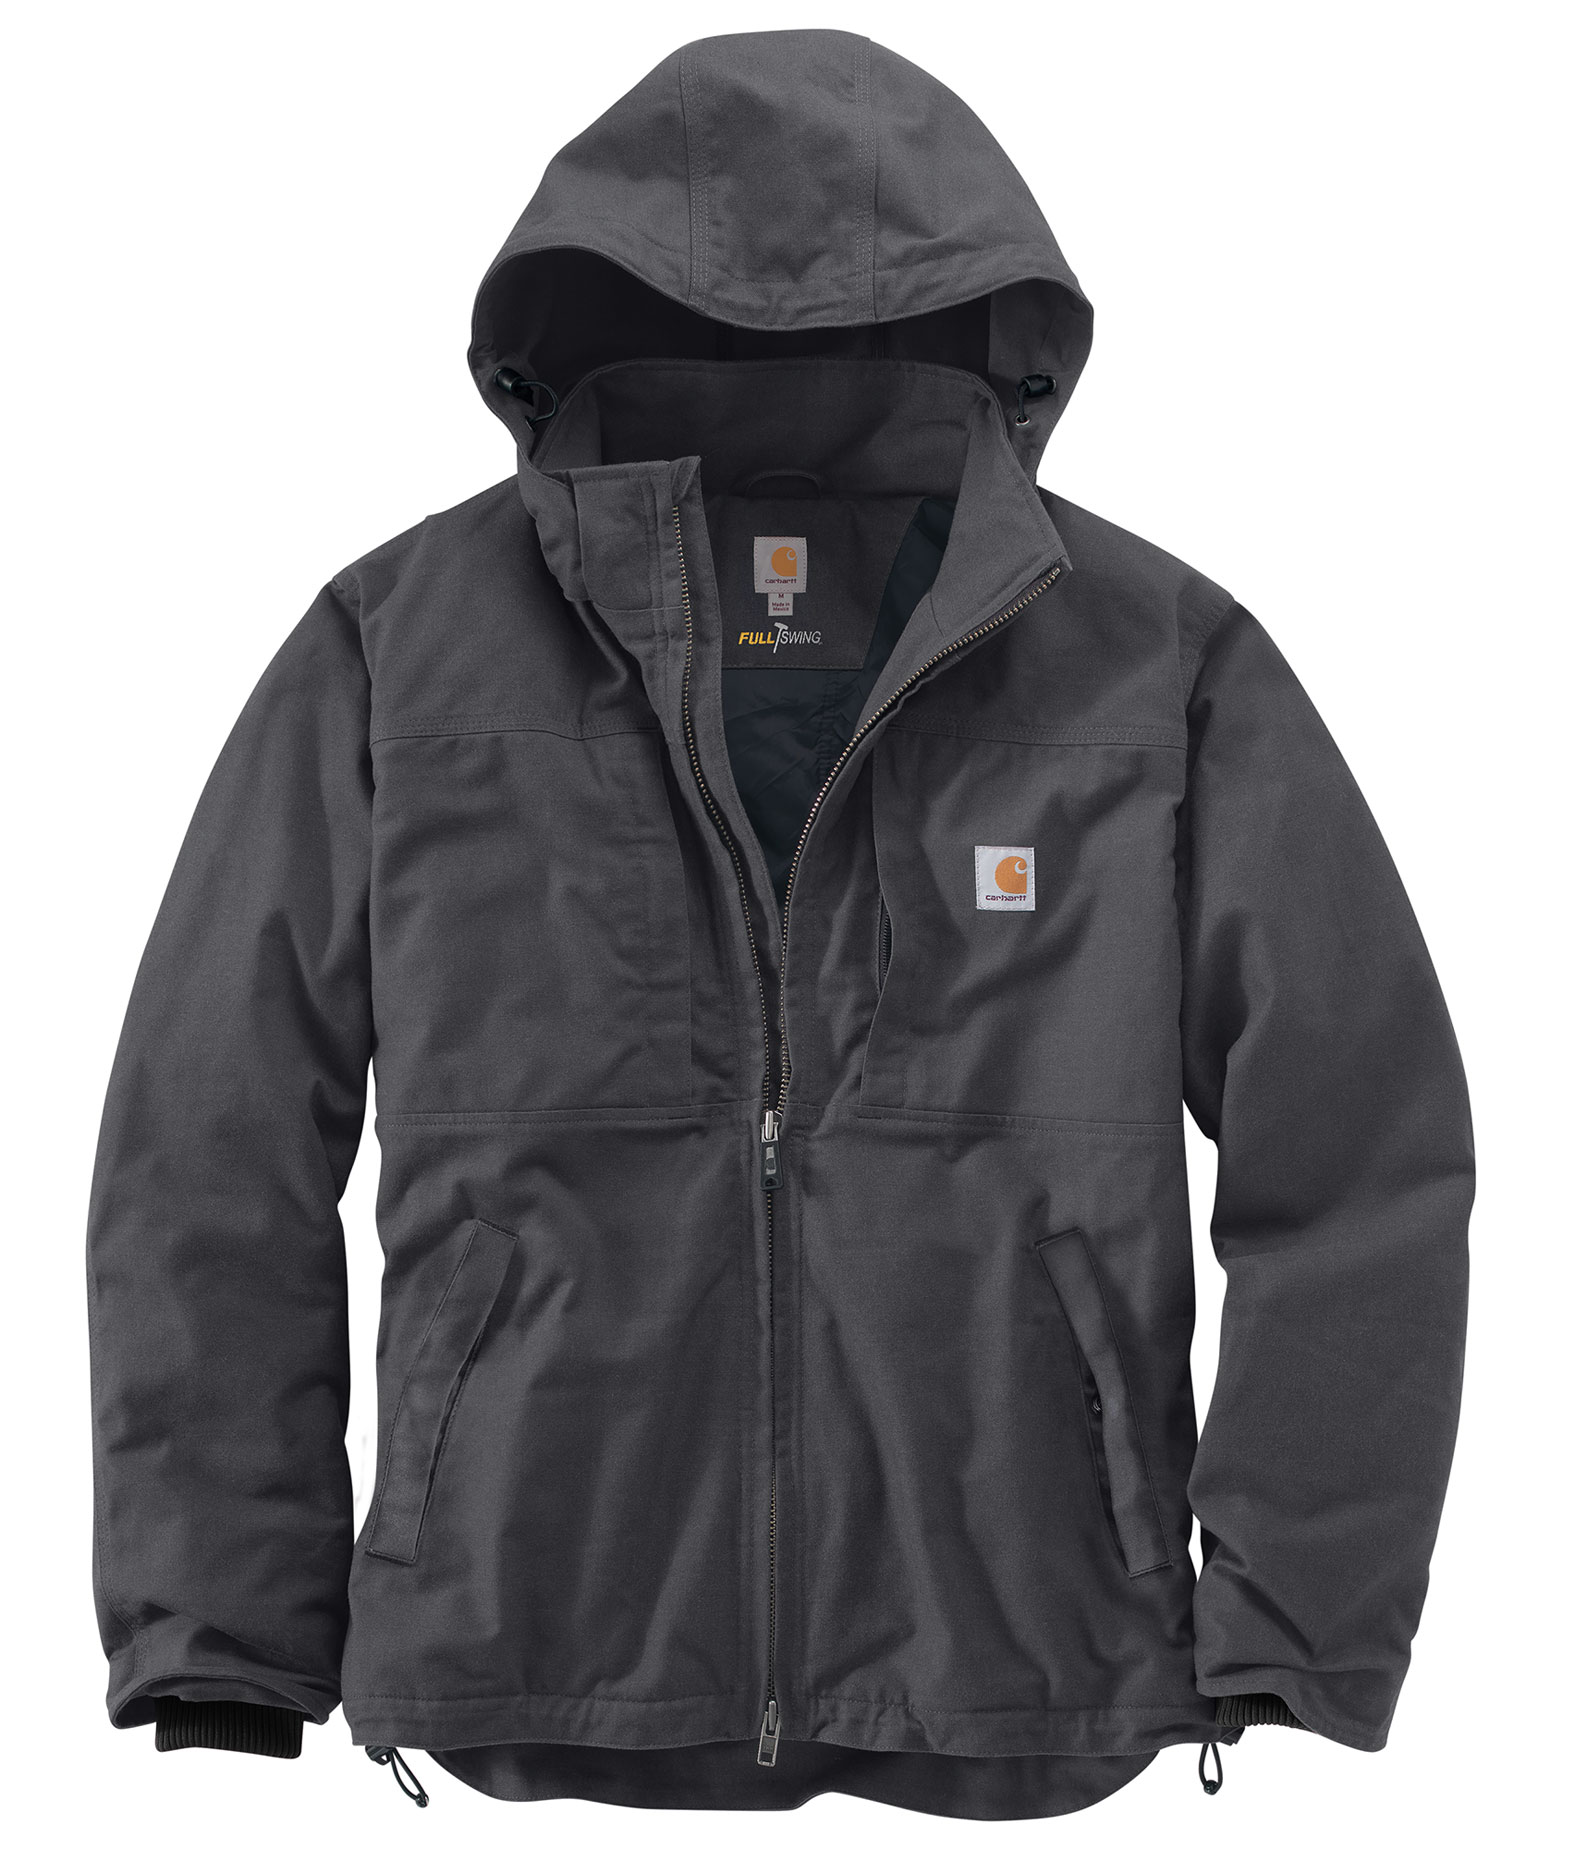 Adult Full Swing® Cryder Jacket by Carhartt